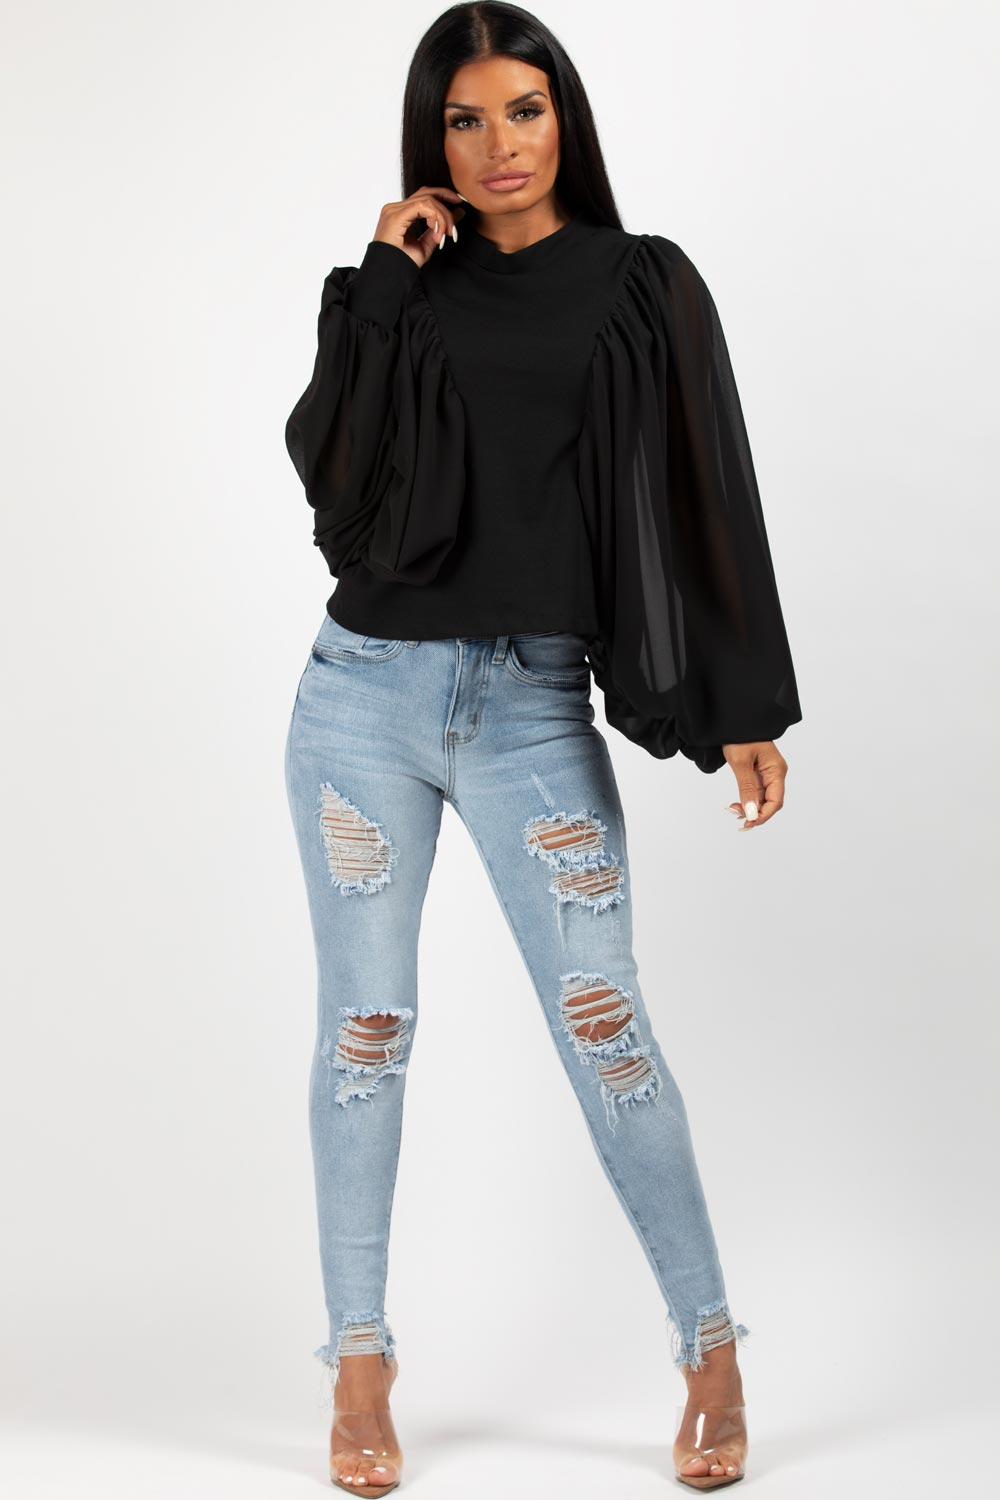 black high neck chiffon sleeve top